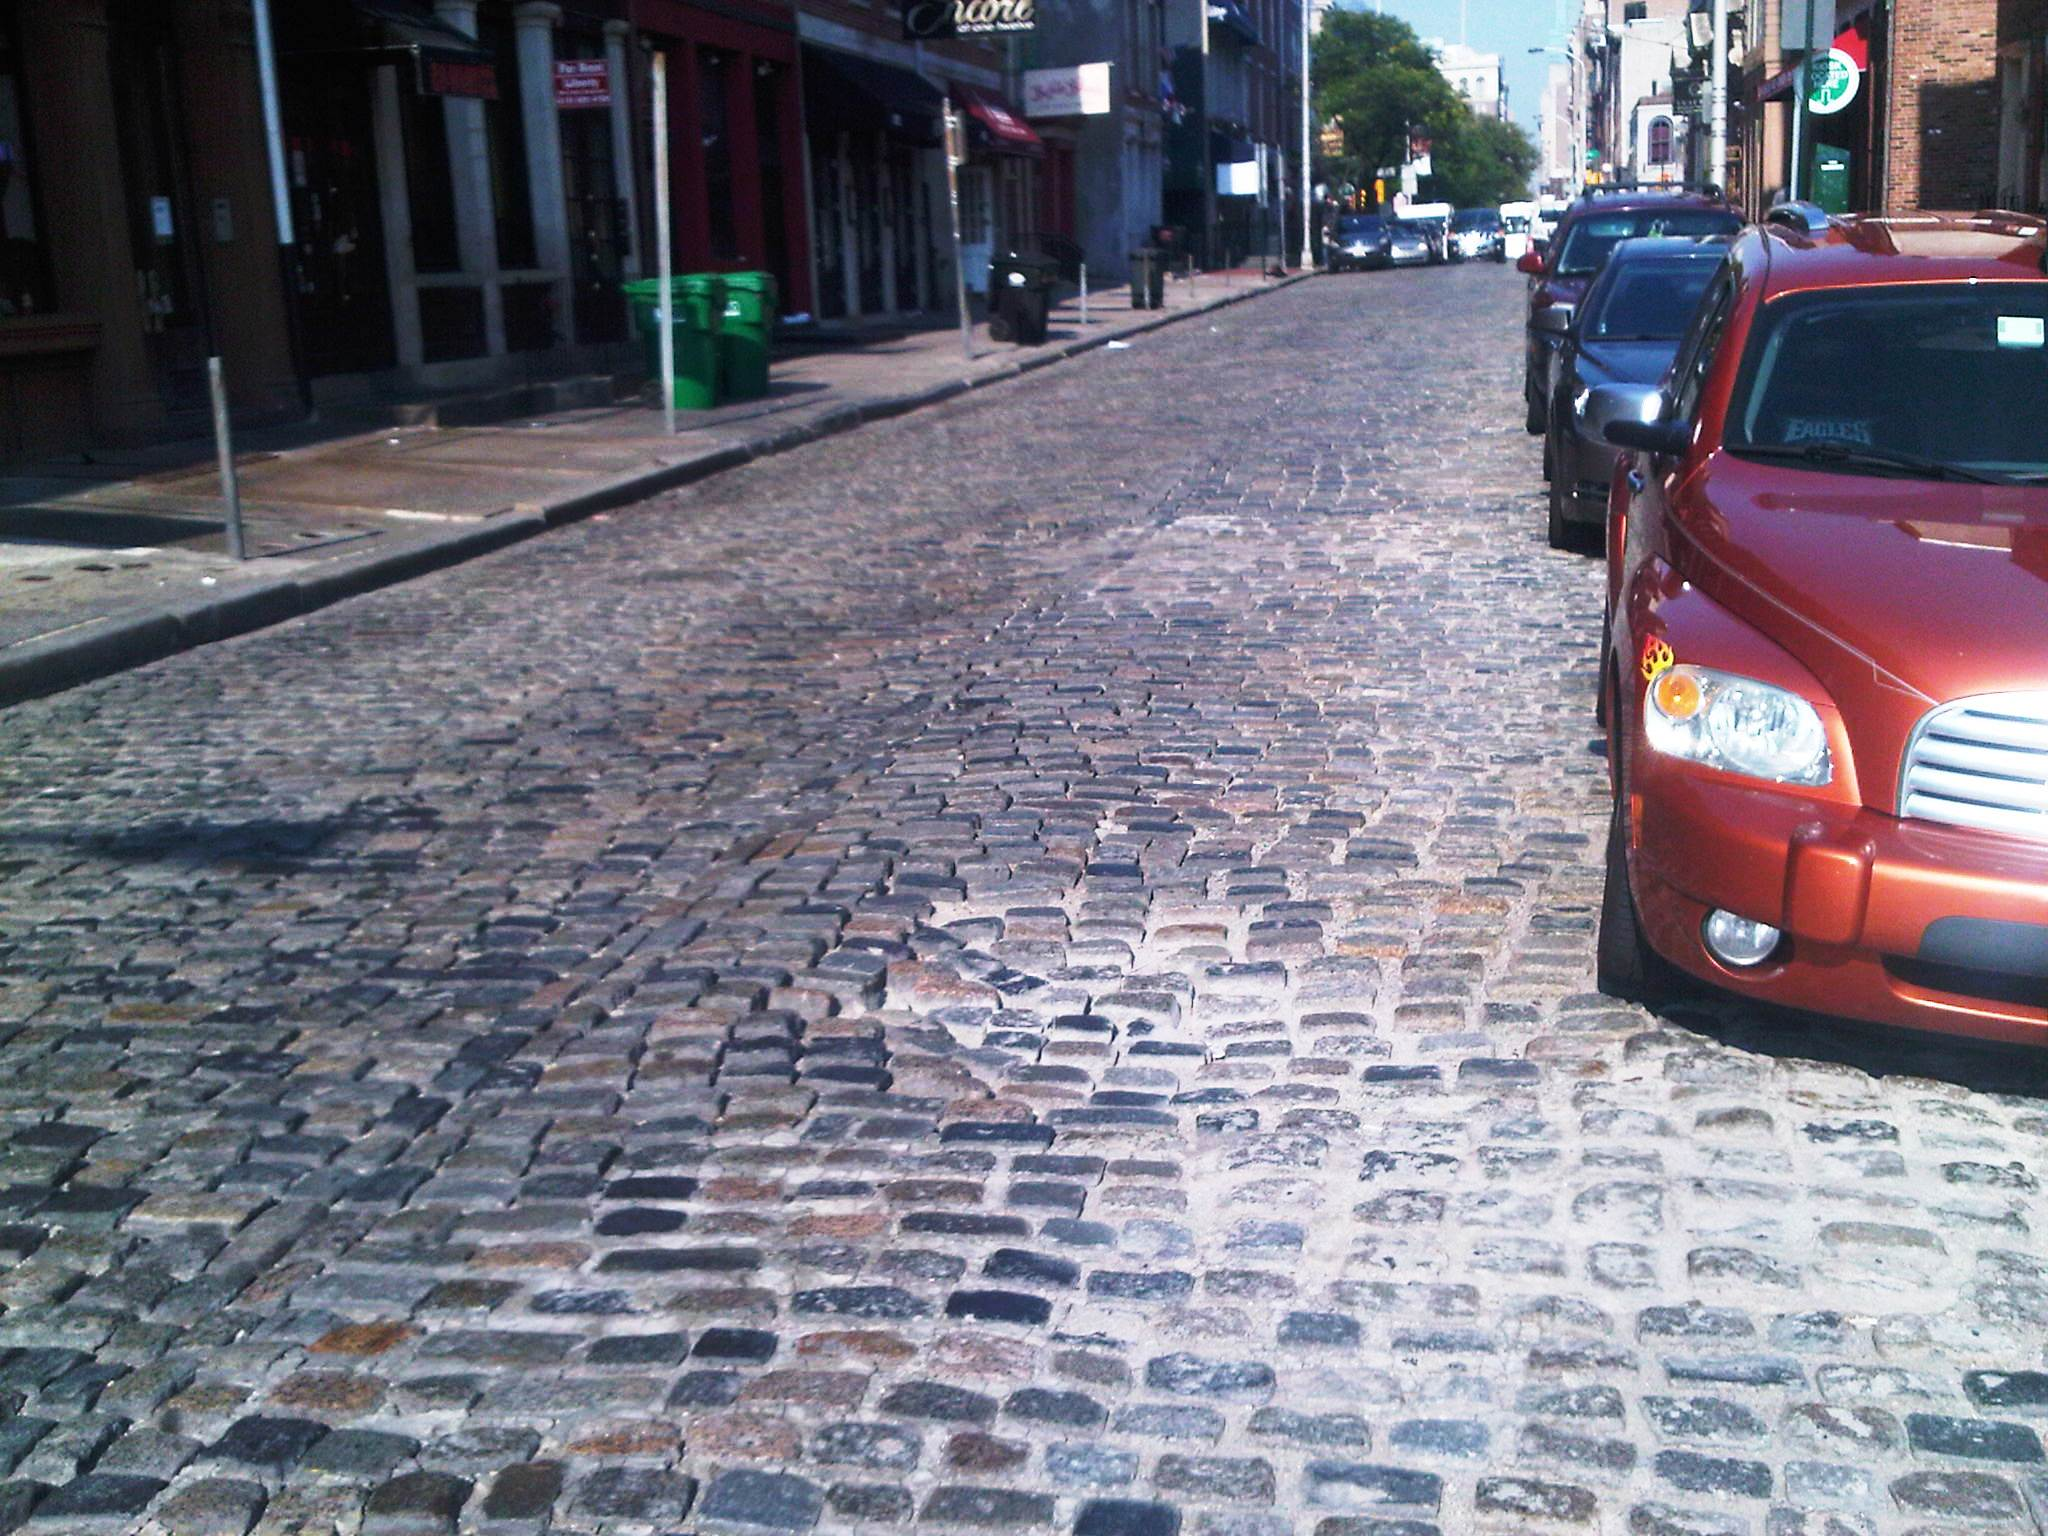 The Belgian block surface of the 100 block of Chestnut Street.